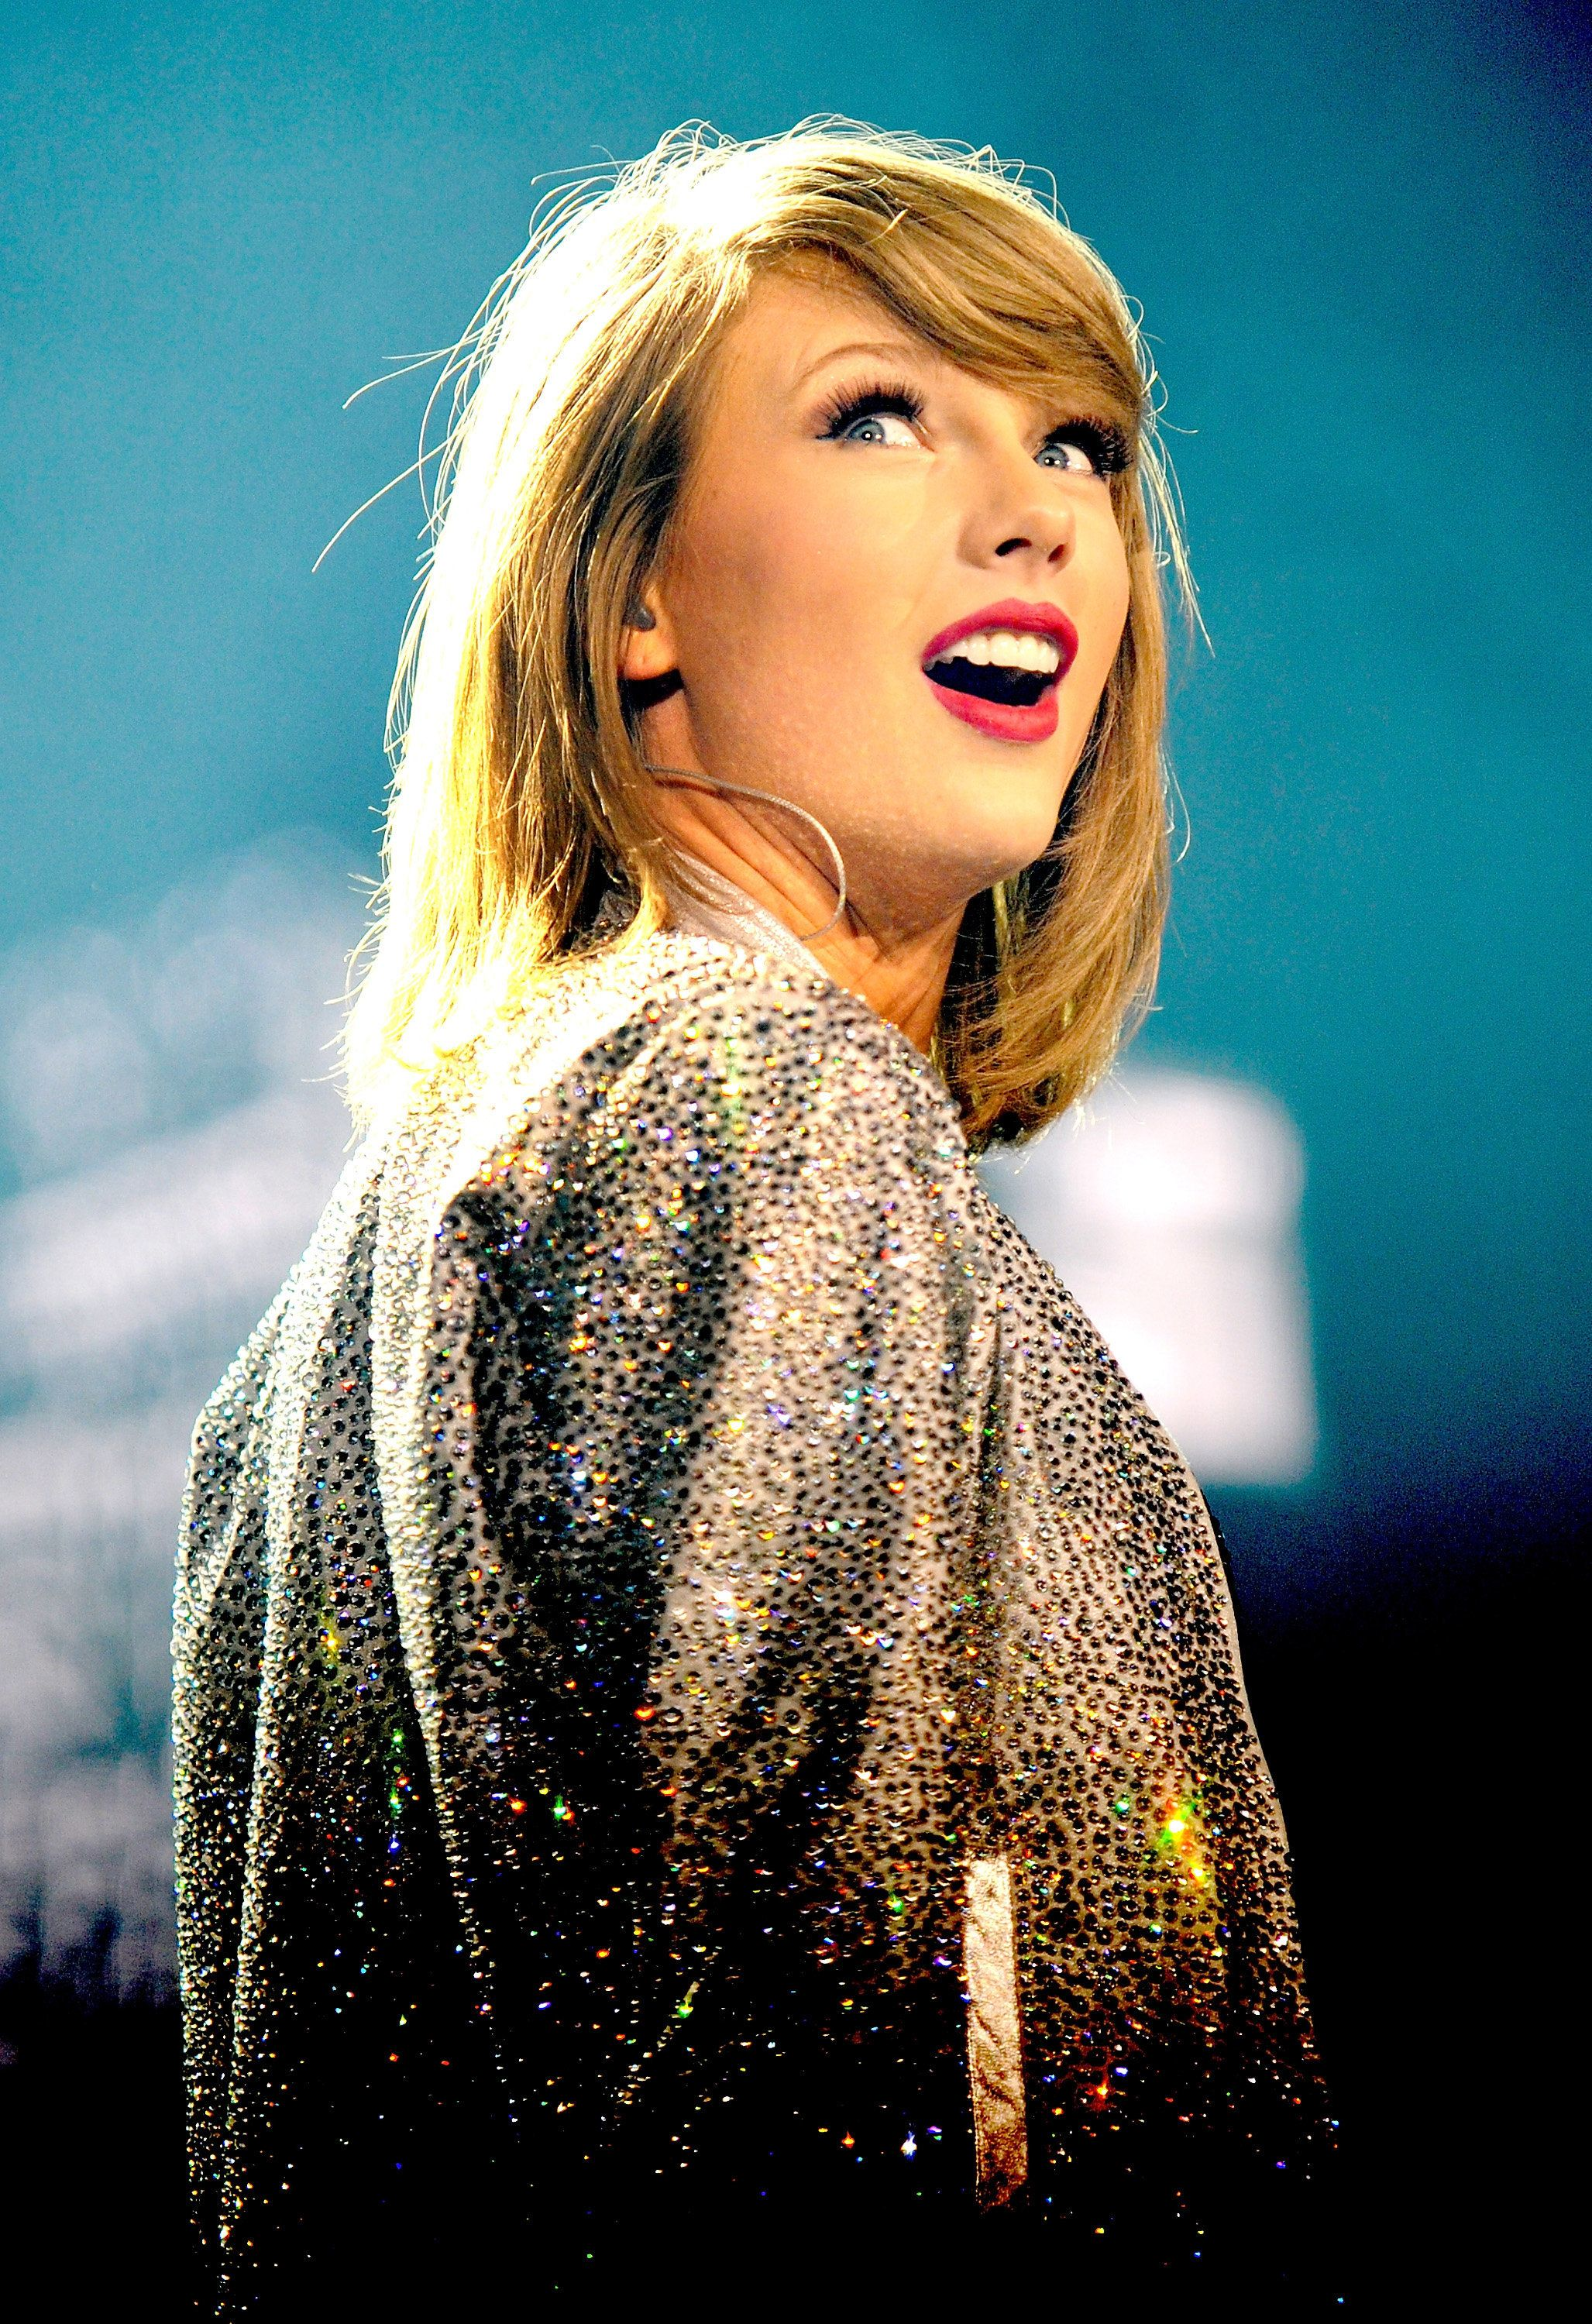 MANCHESTER, ENGLAND - JUNE 24:  Taylor Swift performs at Manchester Arena on June 24, 2015 in Manchester, England.  (Photo by Shirlaine Forrest/Getty Images for TAS)